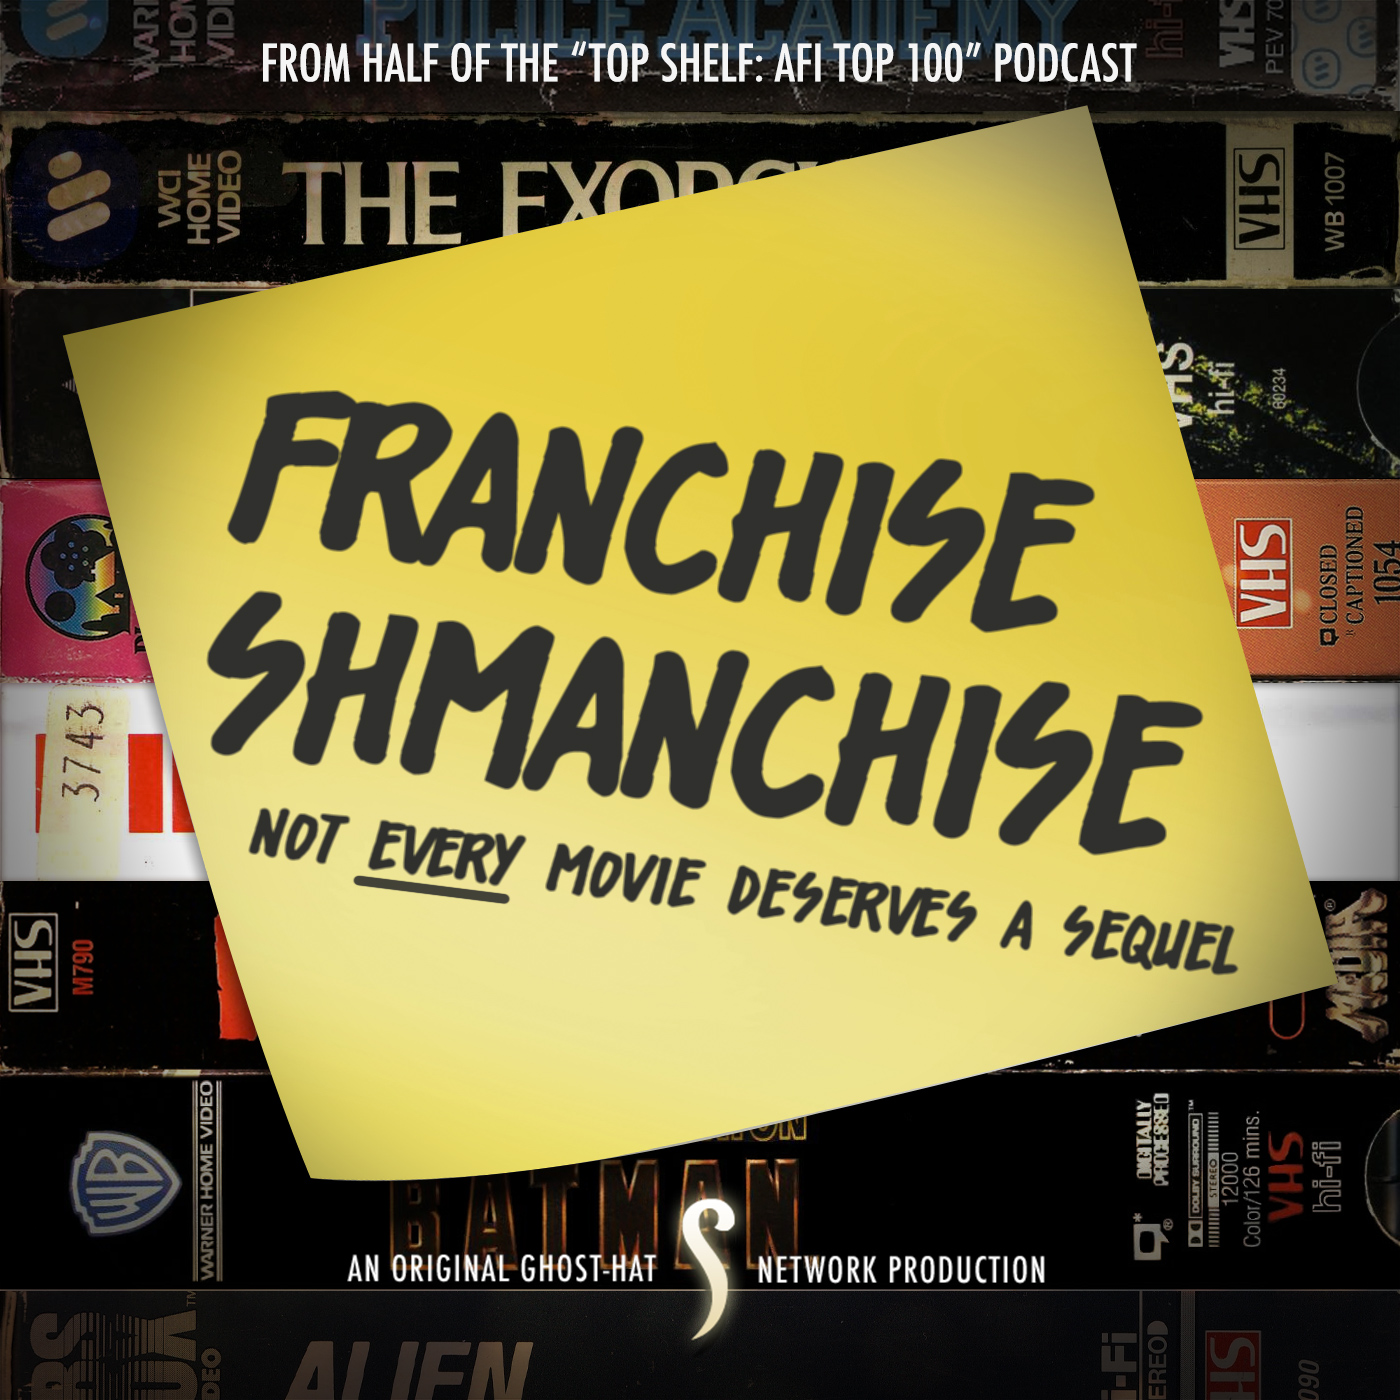 Franchise Shmanchise (Ghost-Hat Network)